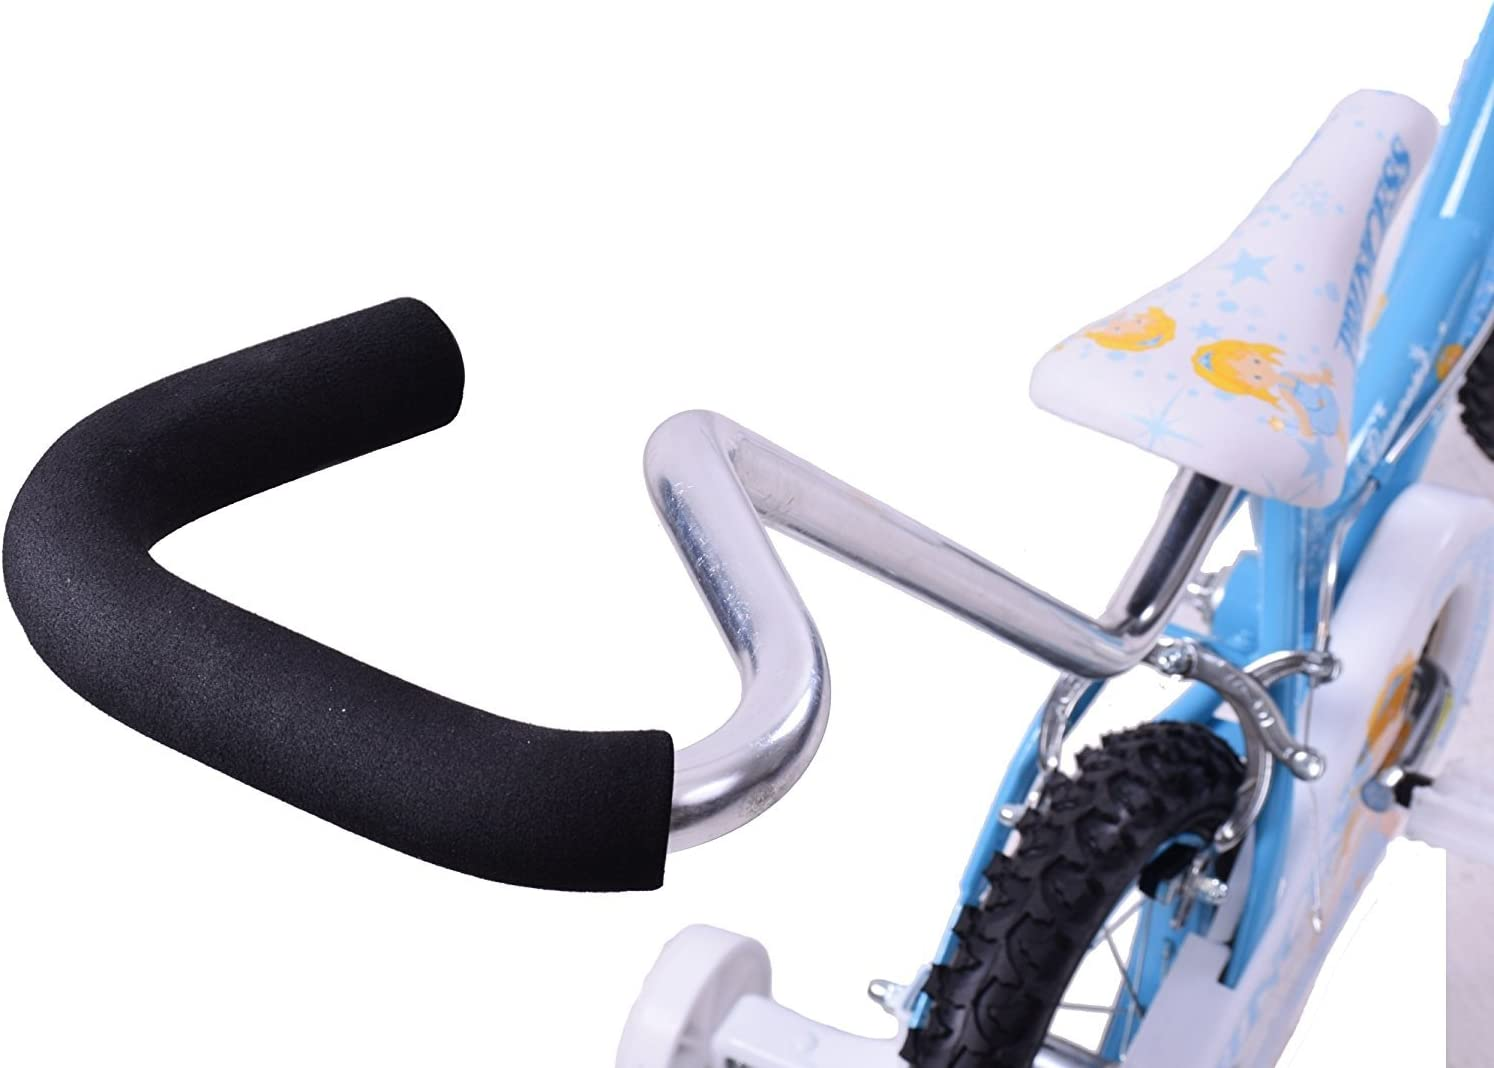 Easy-topbuy Learning Push Handle Kids Safety Pole Bar Bicycle Steerer Control Steel Bicycle Non-slip Safety Grip Black Bike Parent Grab Handle